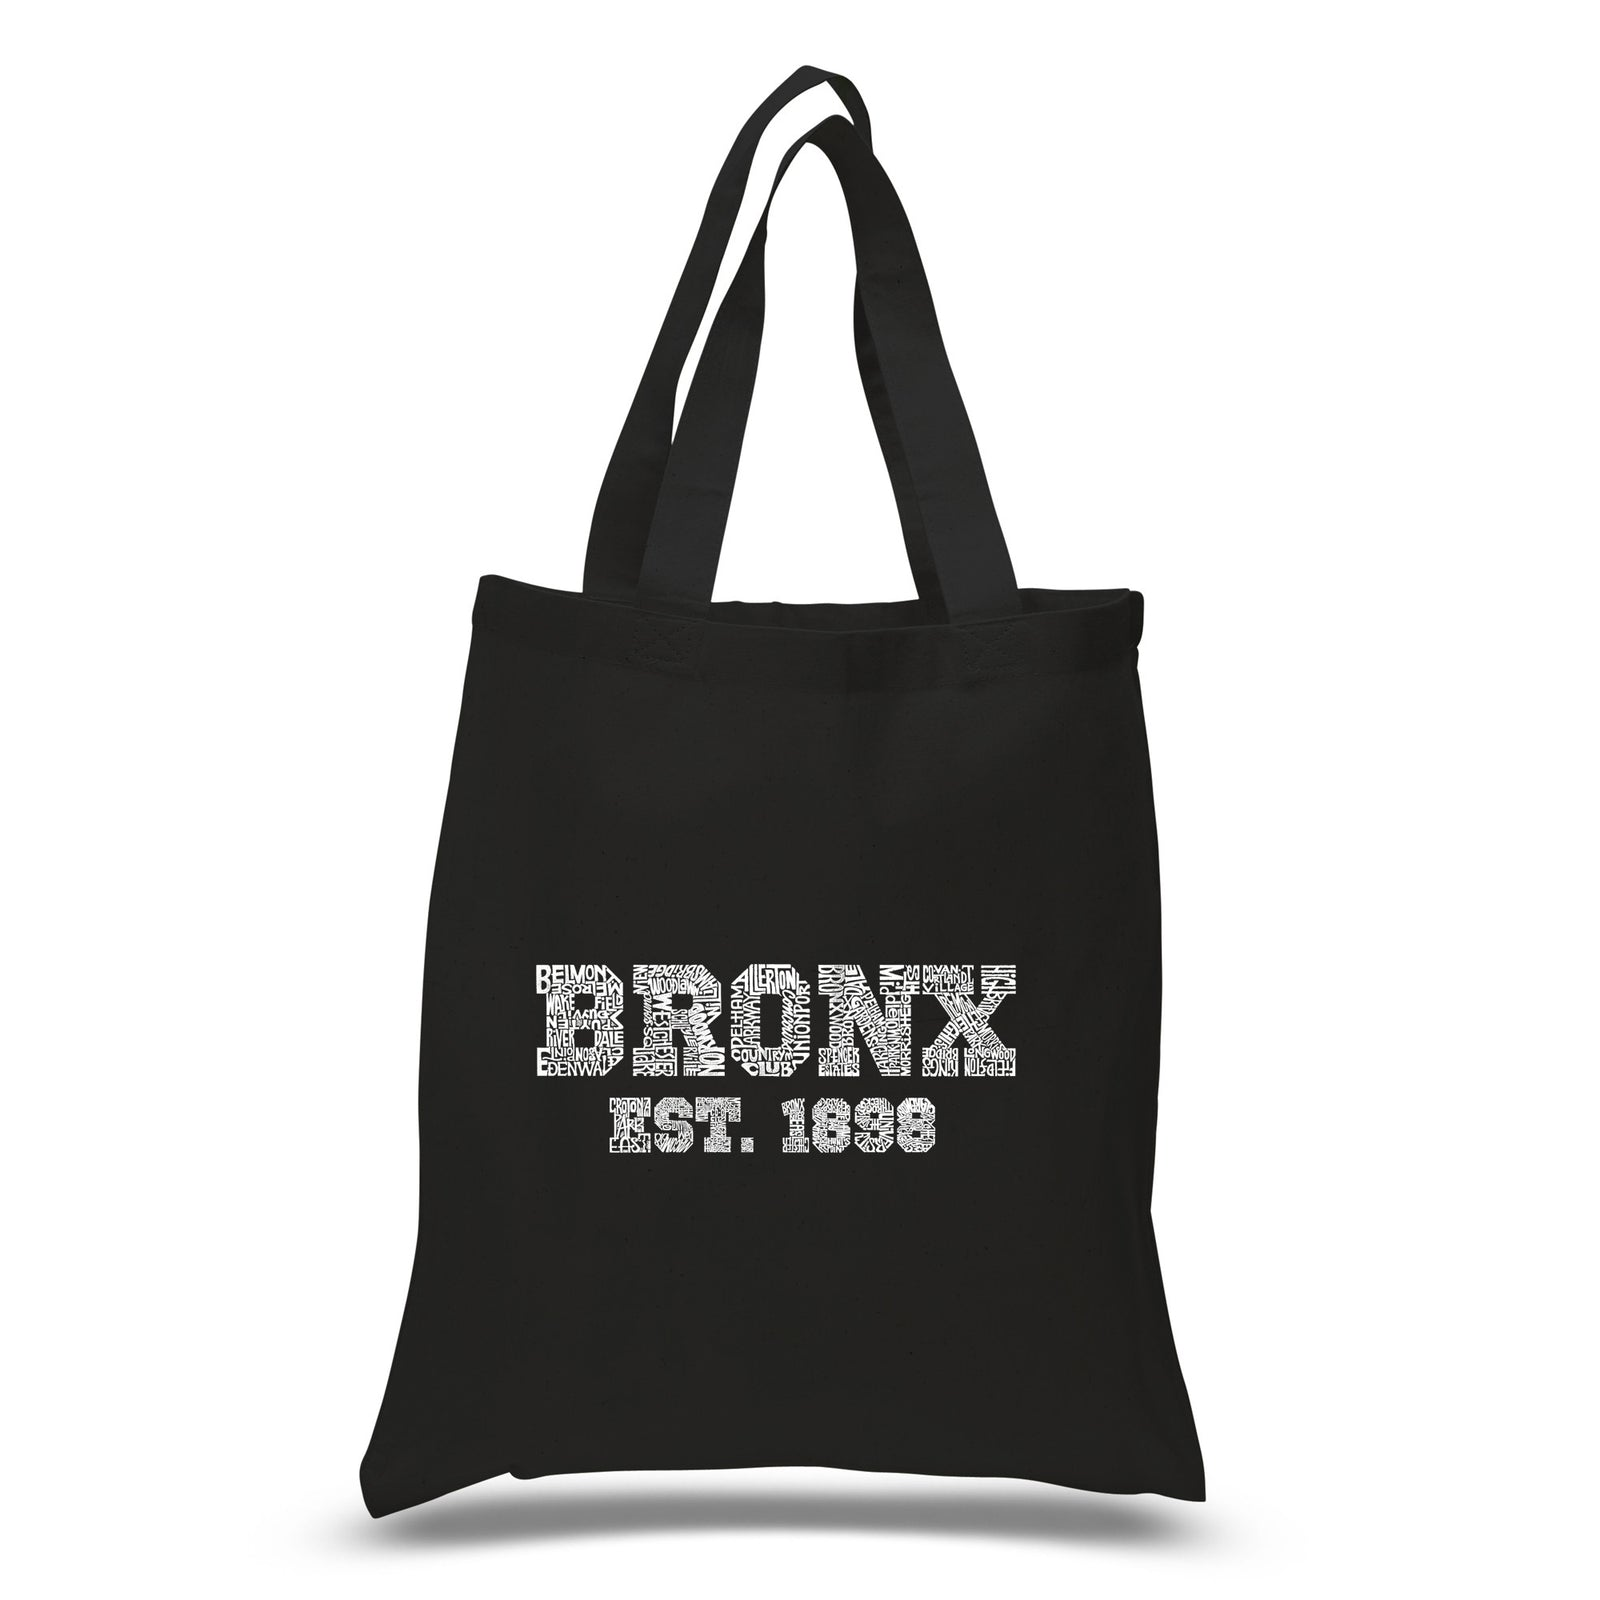 Small Tote Bag - POPULAR NEIGHBORHOODS IN BRONX, NY